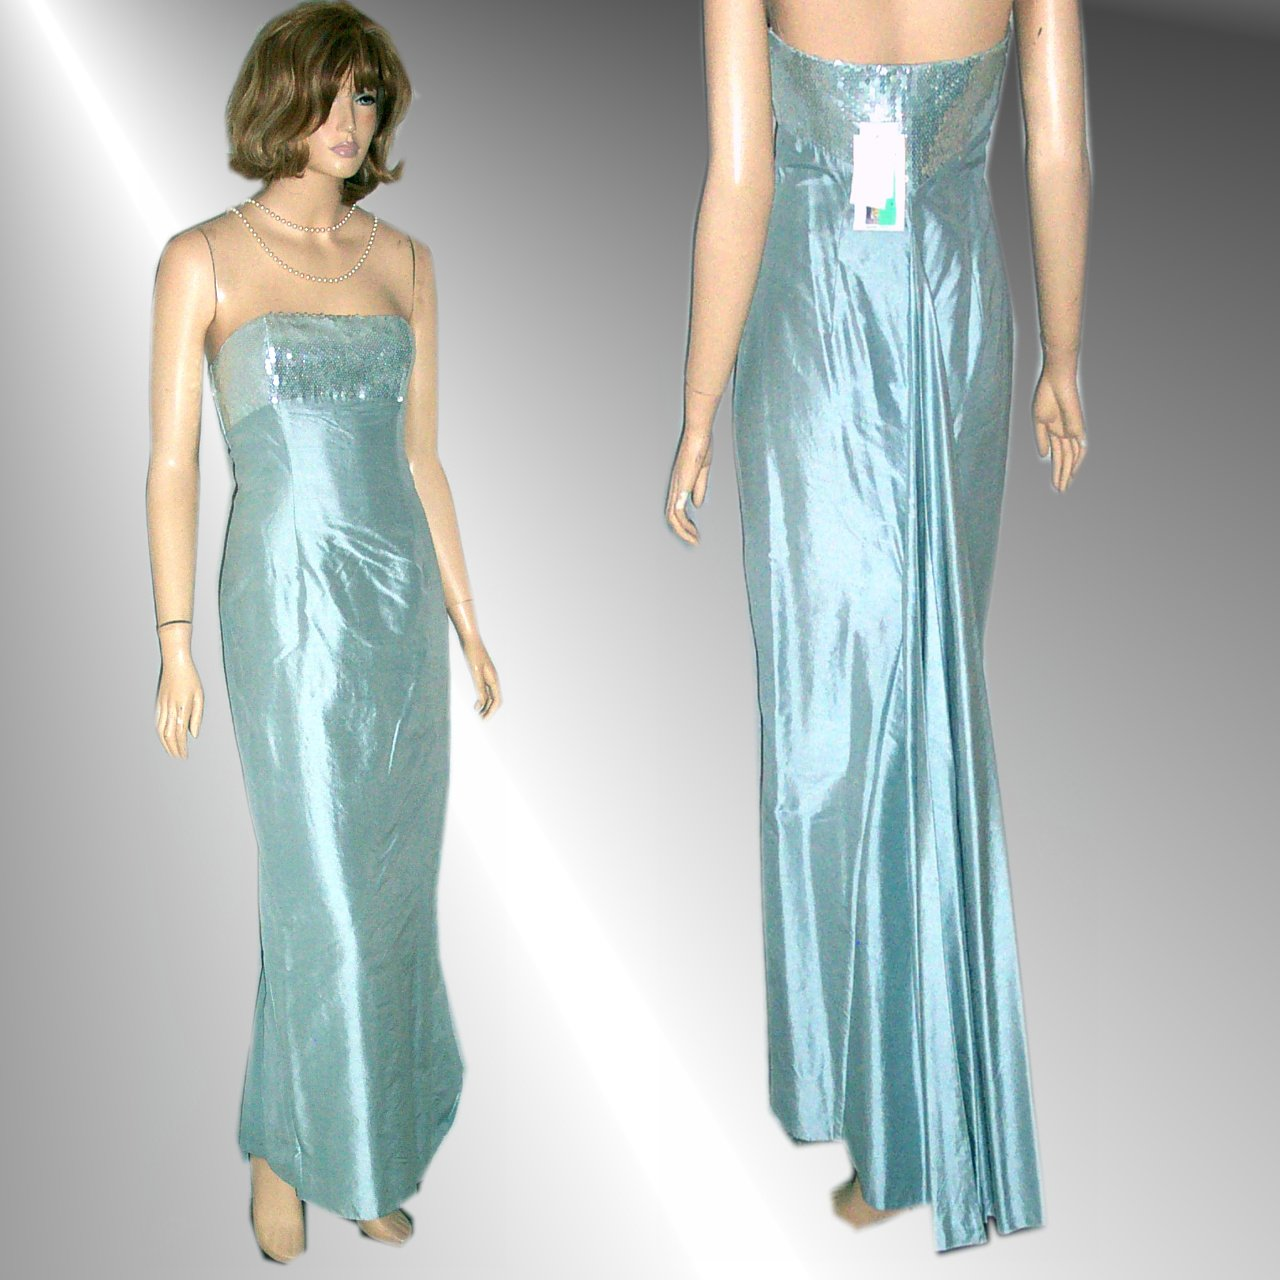 """JESSICA McCLINTOCK Shantung Silk Strapless Fishtail Gown in Ice Blue - Bust 32"""""""